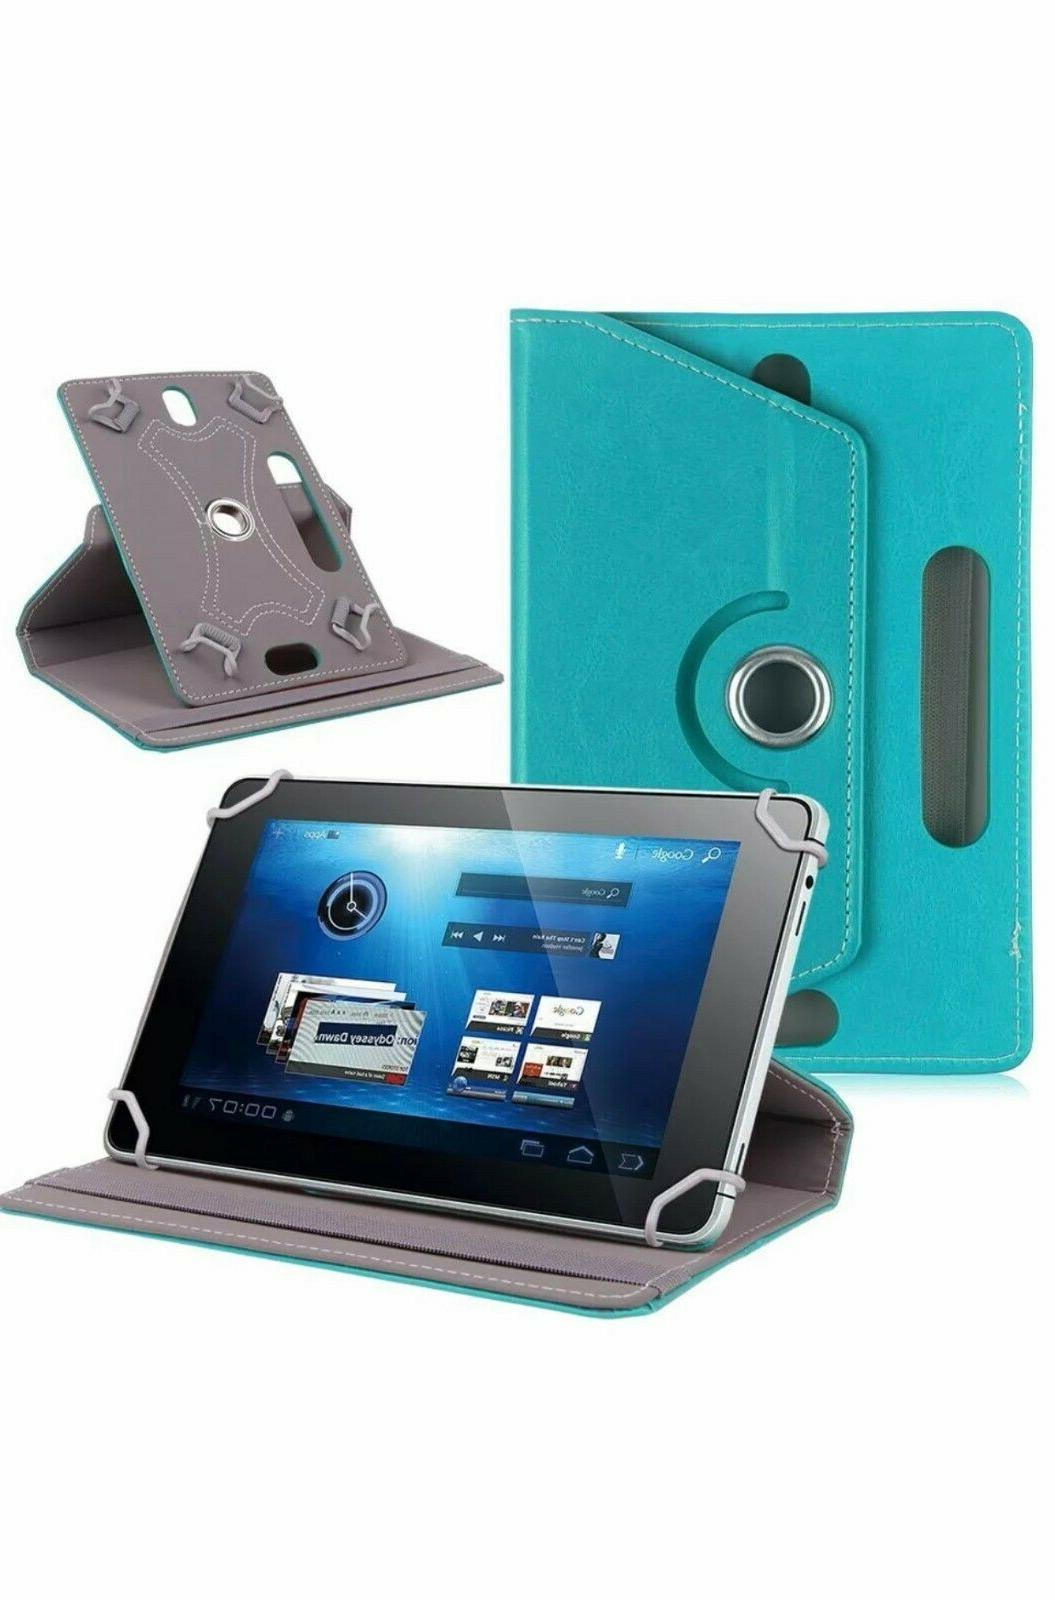 Protective for Android Tablet LG